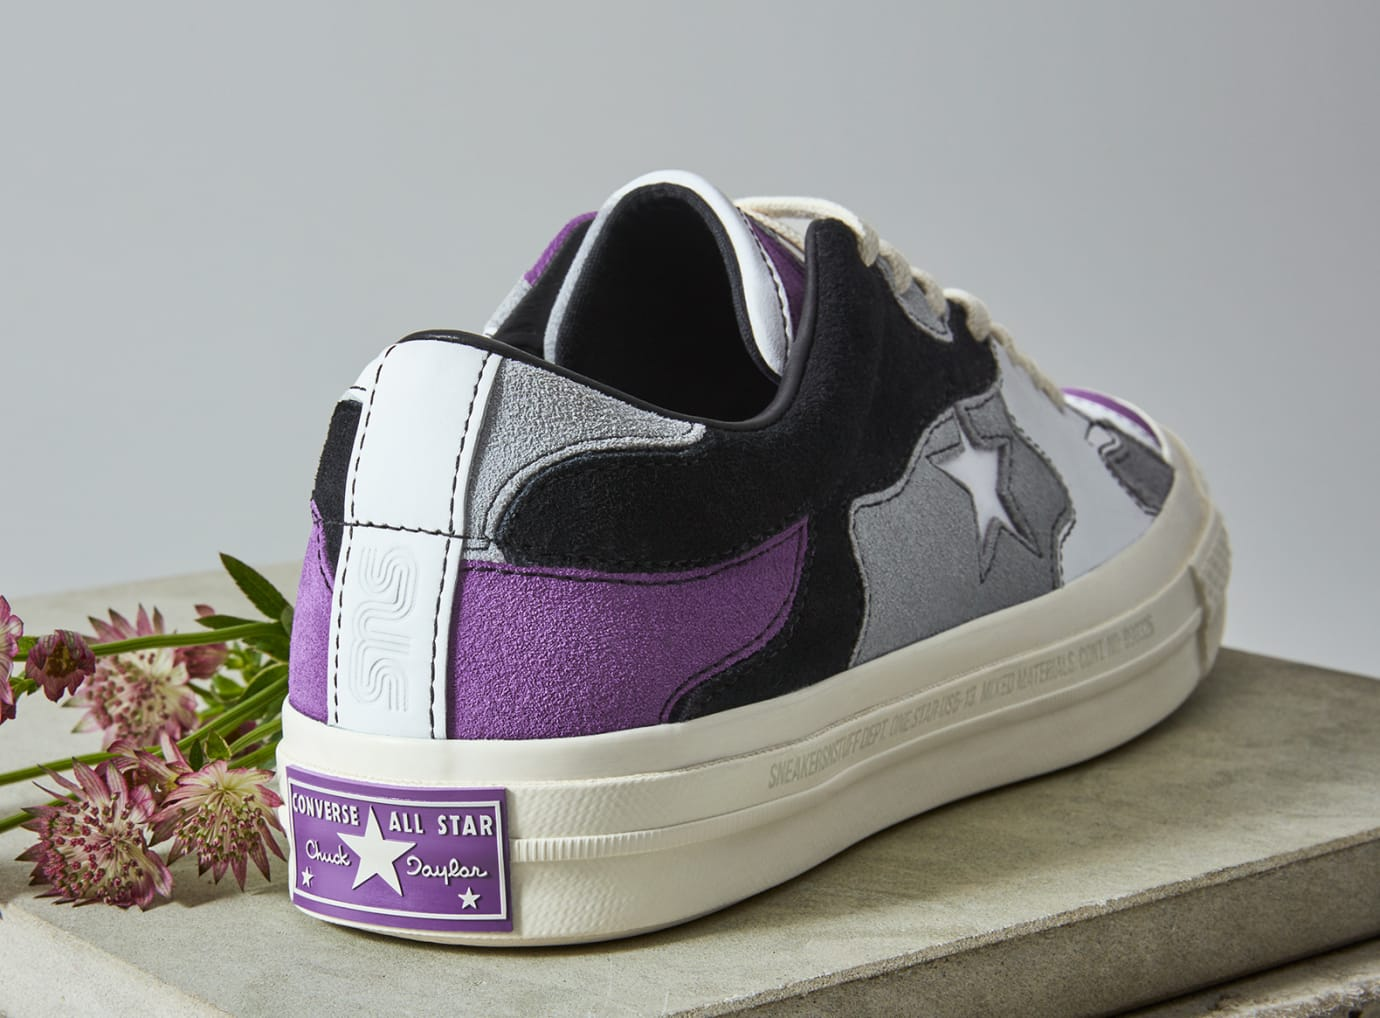 Sneakersnstuff x Converse One Star Release Date | Sole Collector